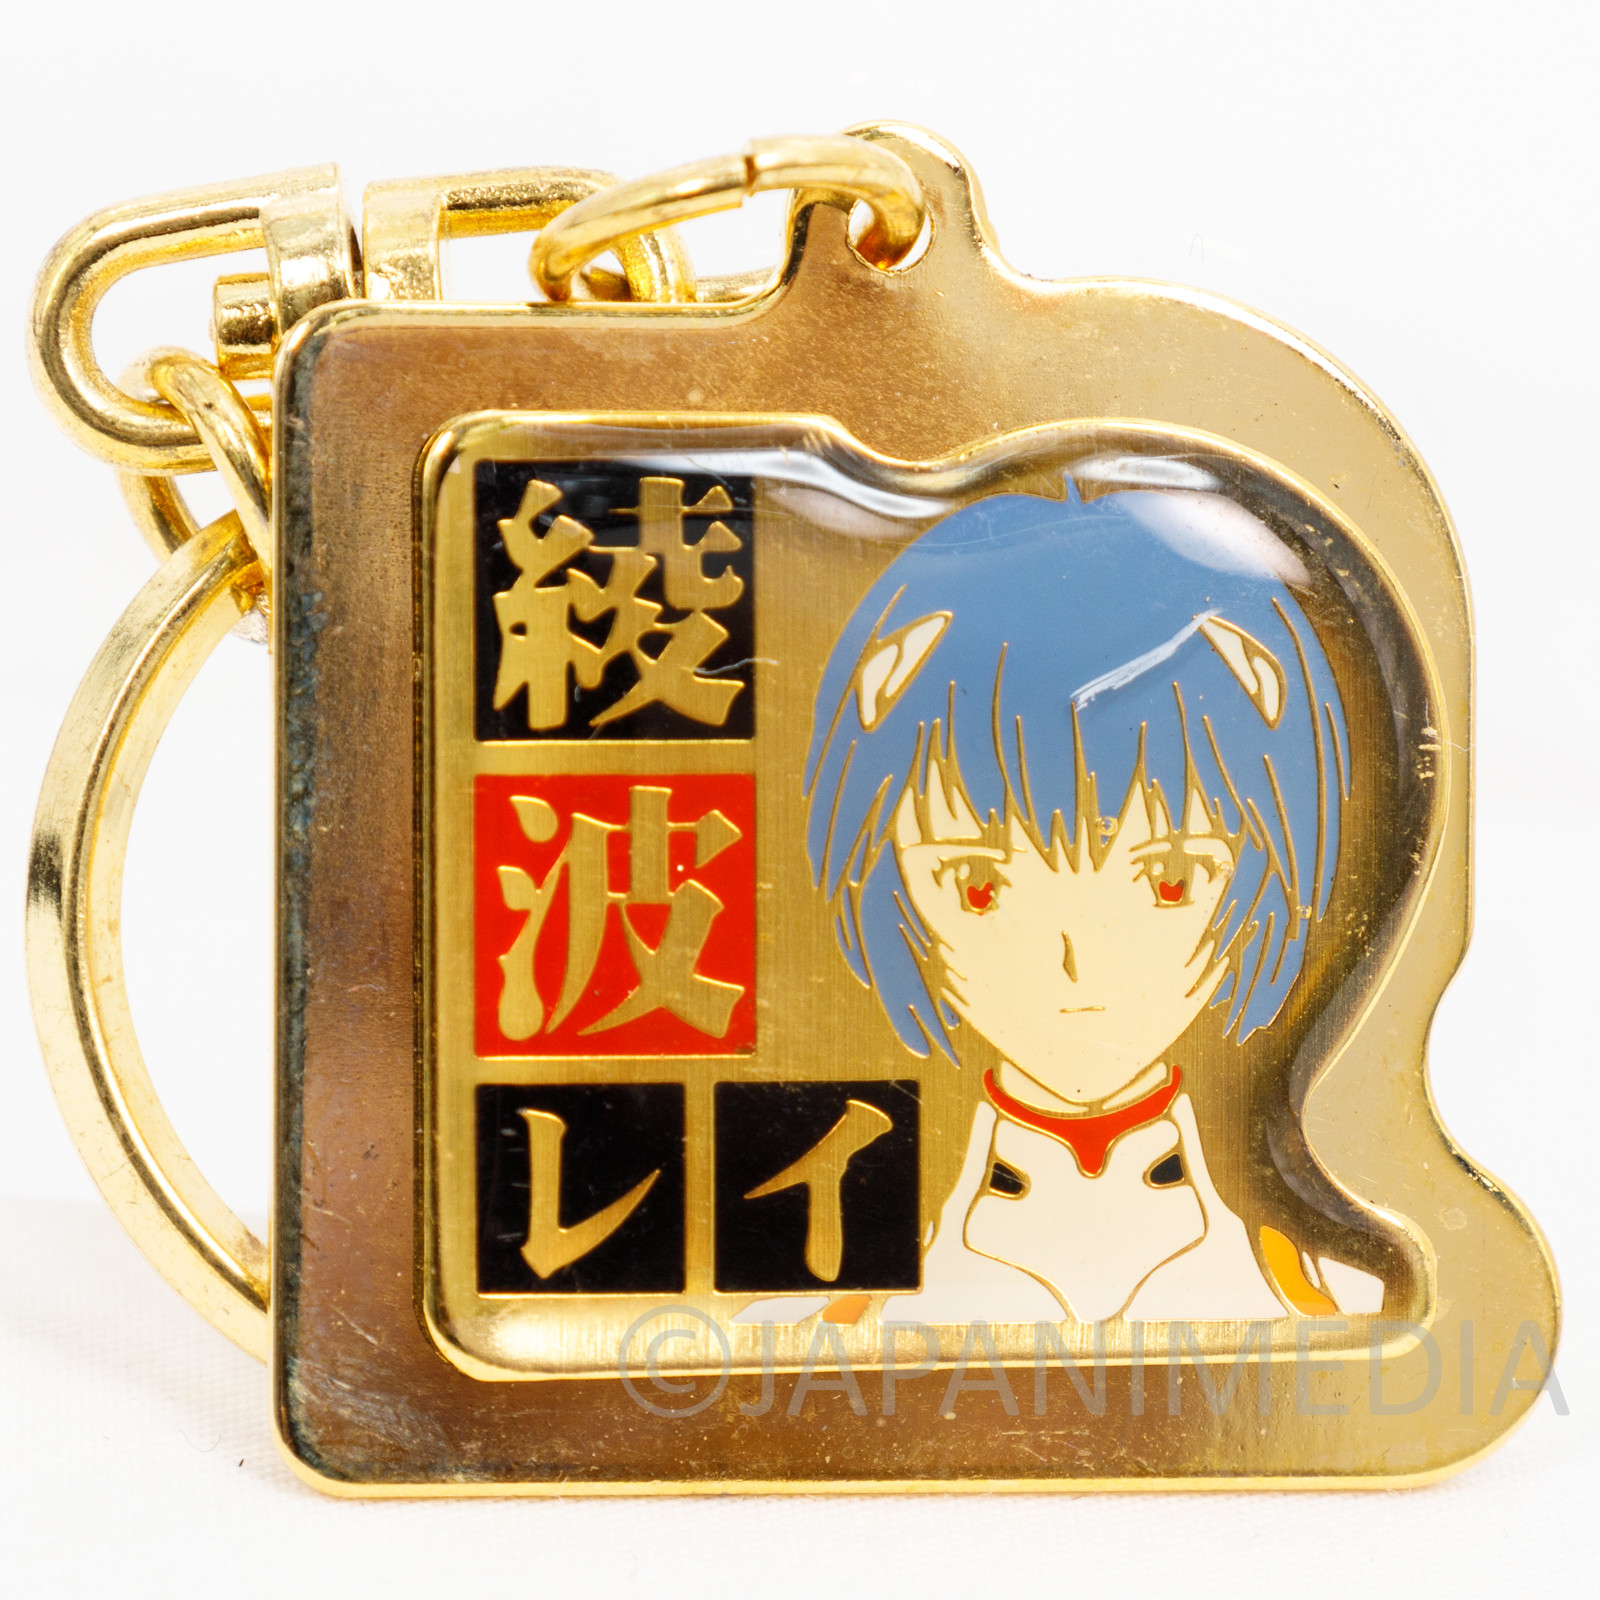 End of Evangelion Rei Ayanami Metal Plate Keychain Theater Limited JAPAN ANIME 2